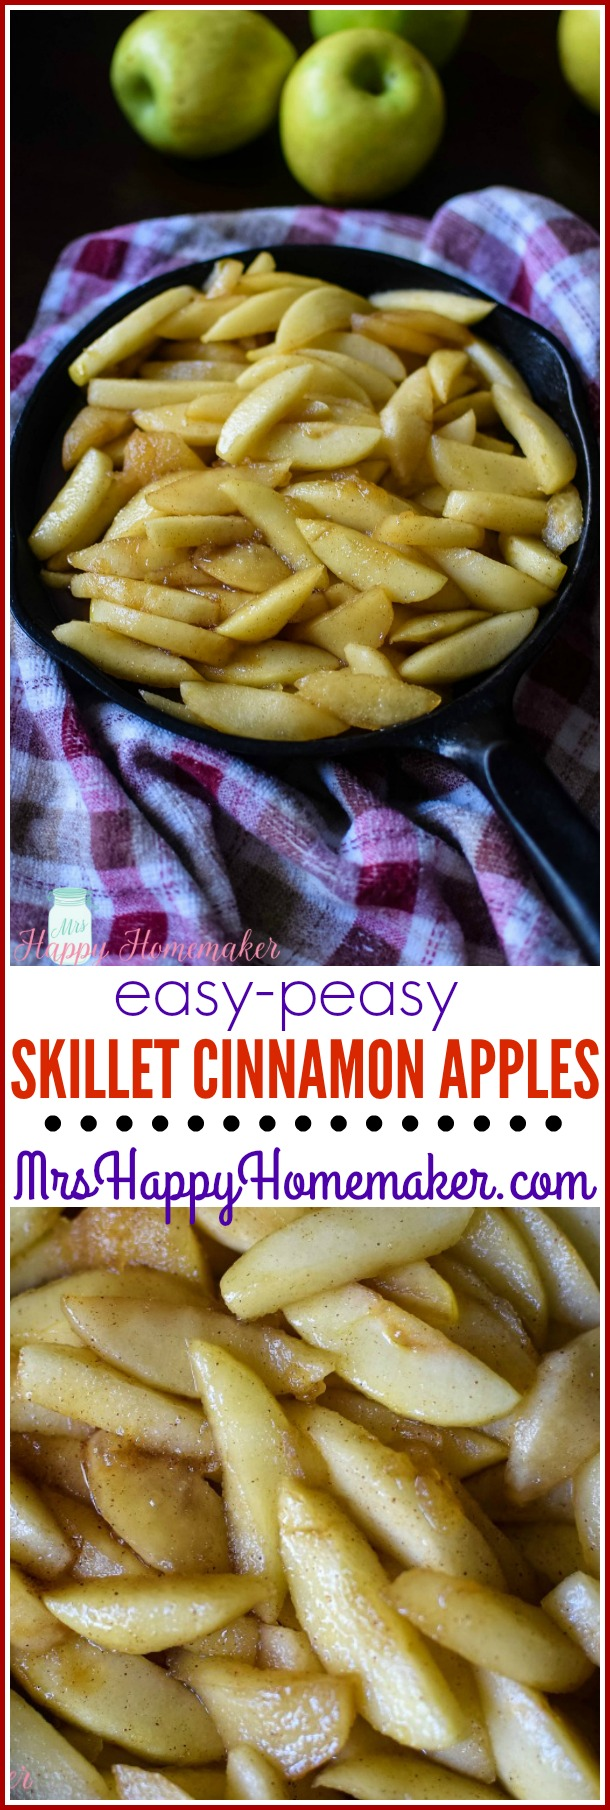 Easy Peasy Skillet Cinnamon Apples | MrsHappyHomemaker.com